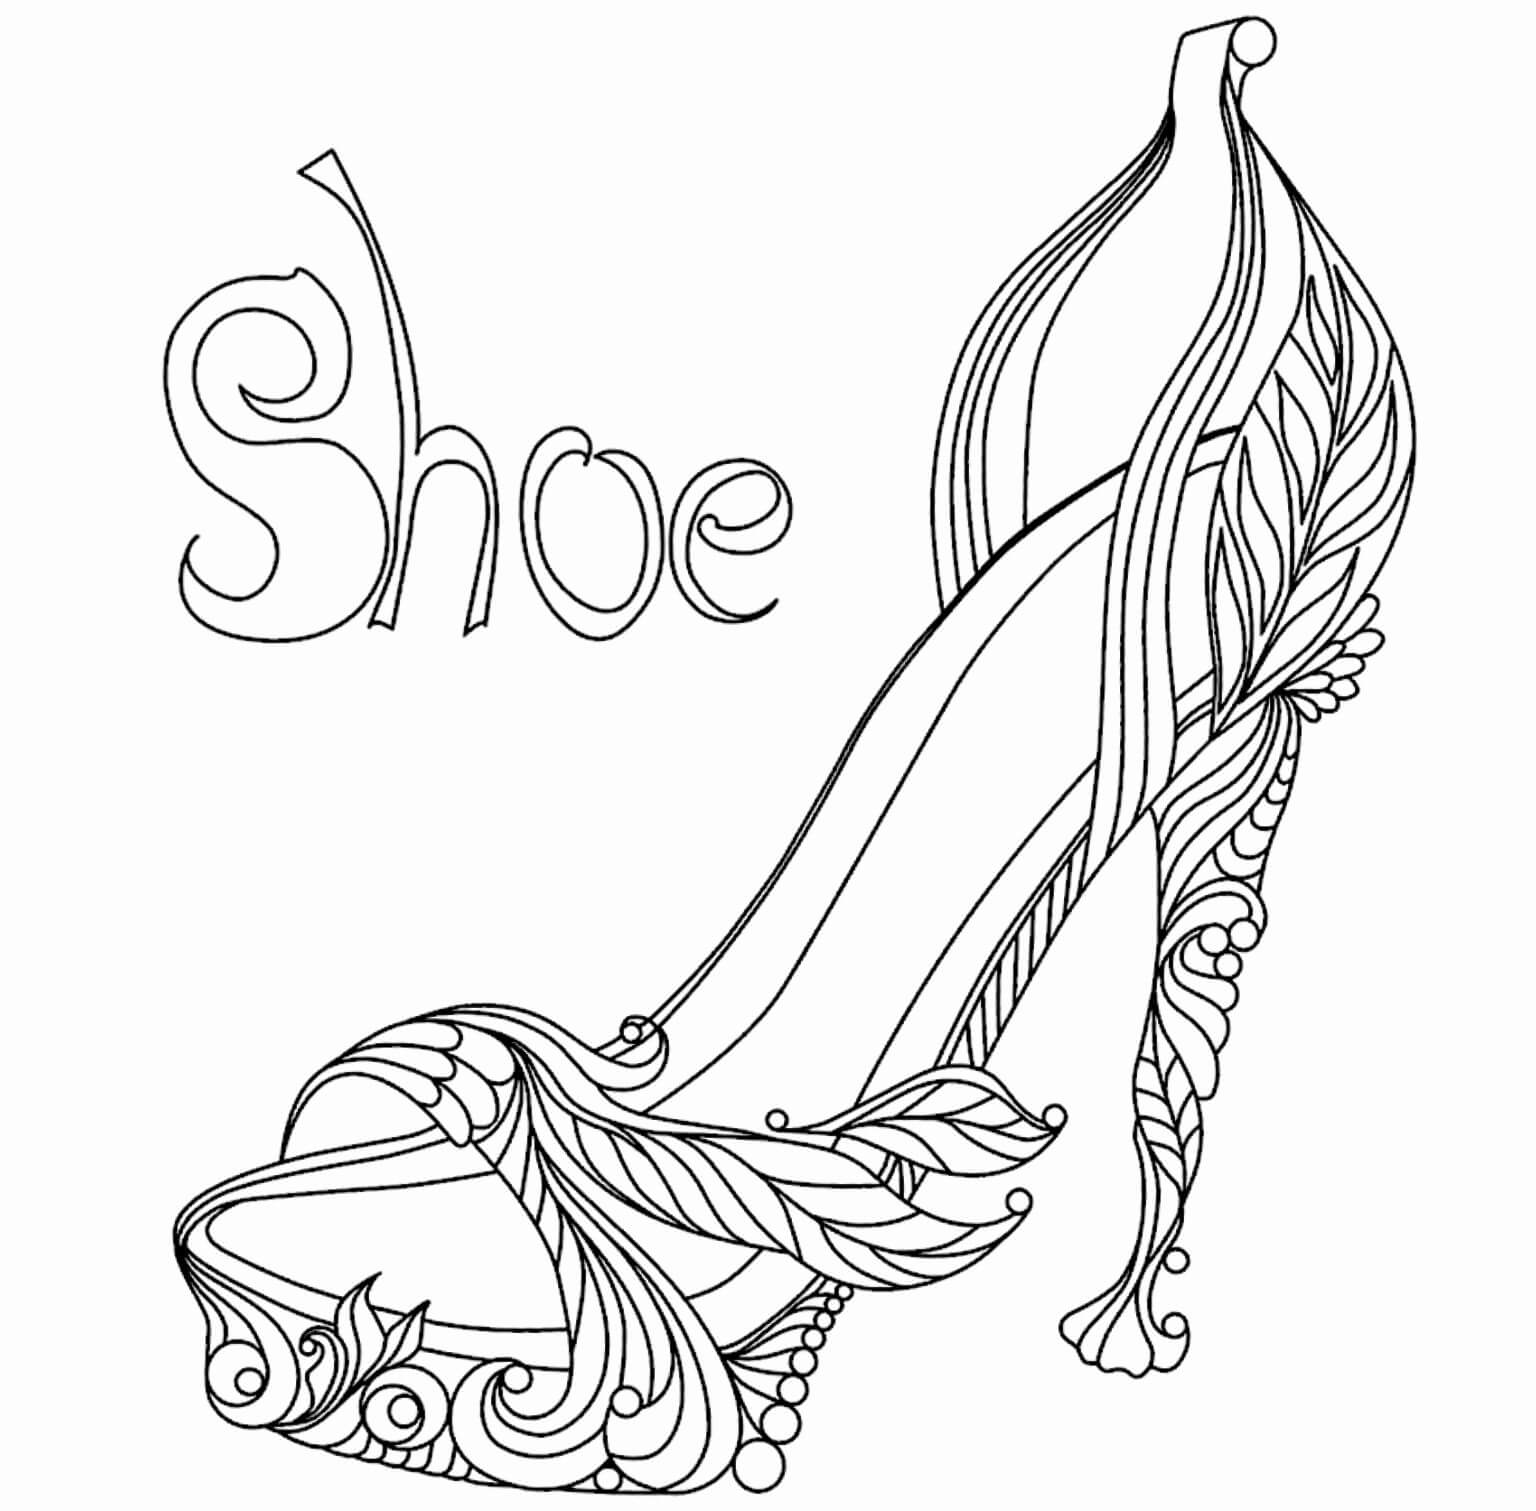 High Heel Drawing Template At Paintingvalley | Explore Inside High Heel Shoe Template For Card